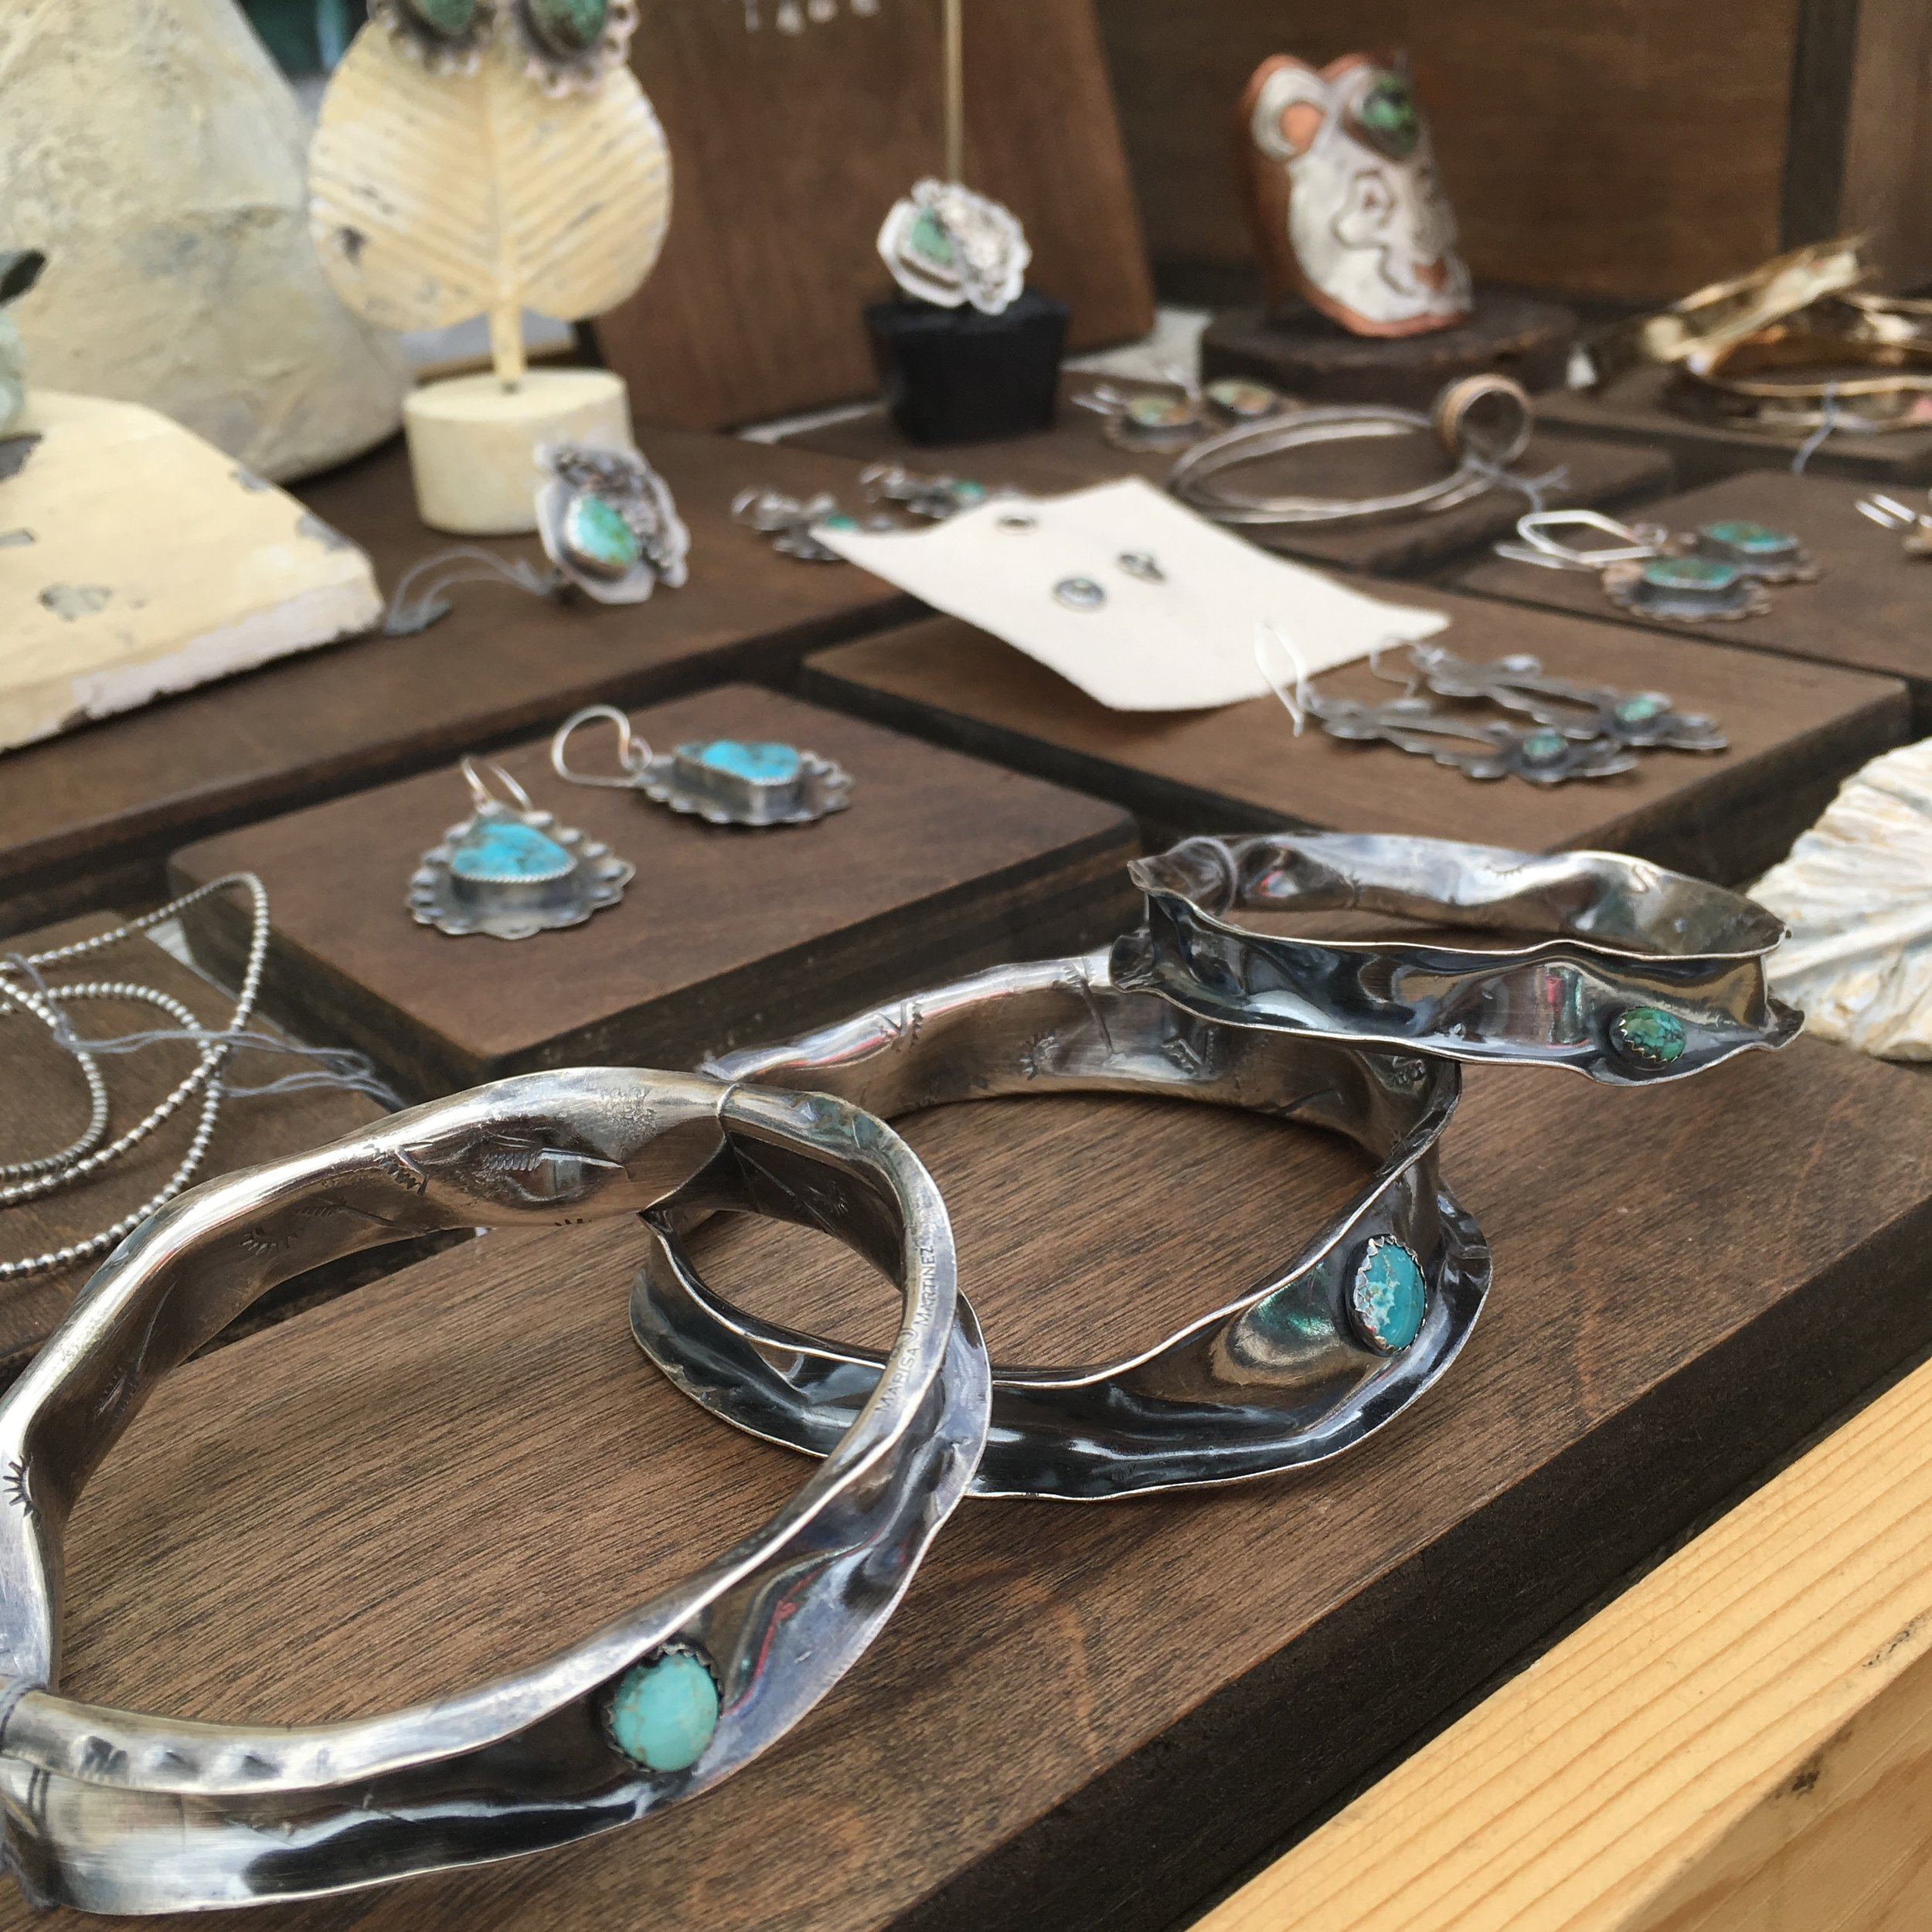 Silversmith Bracelet - Private and Small Group